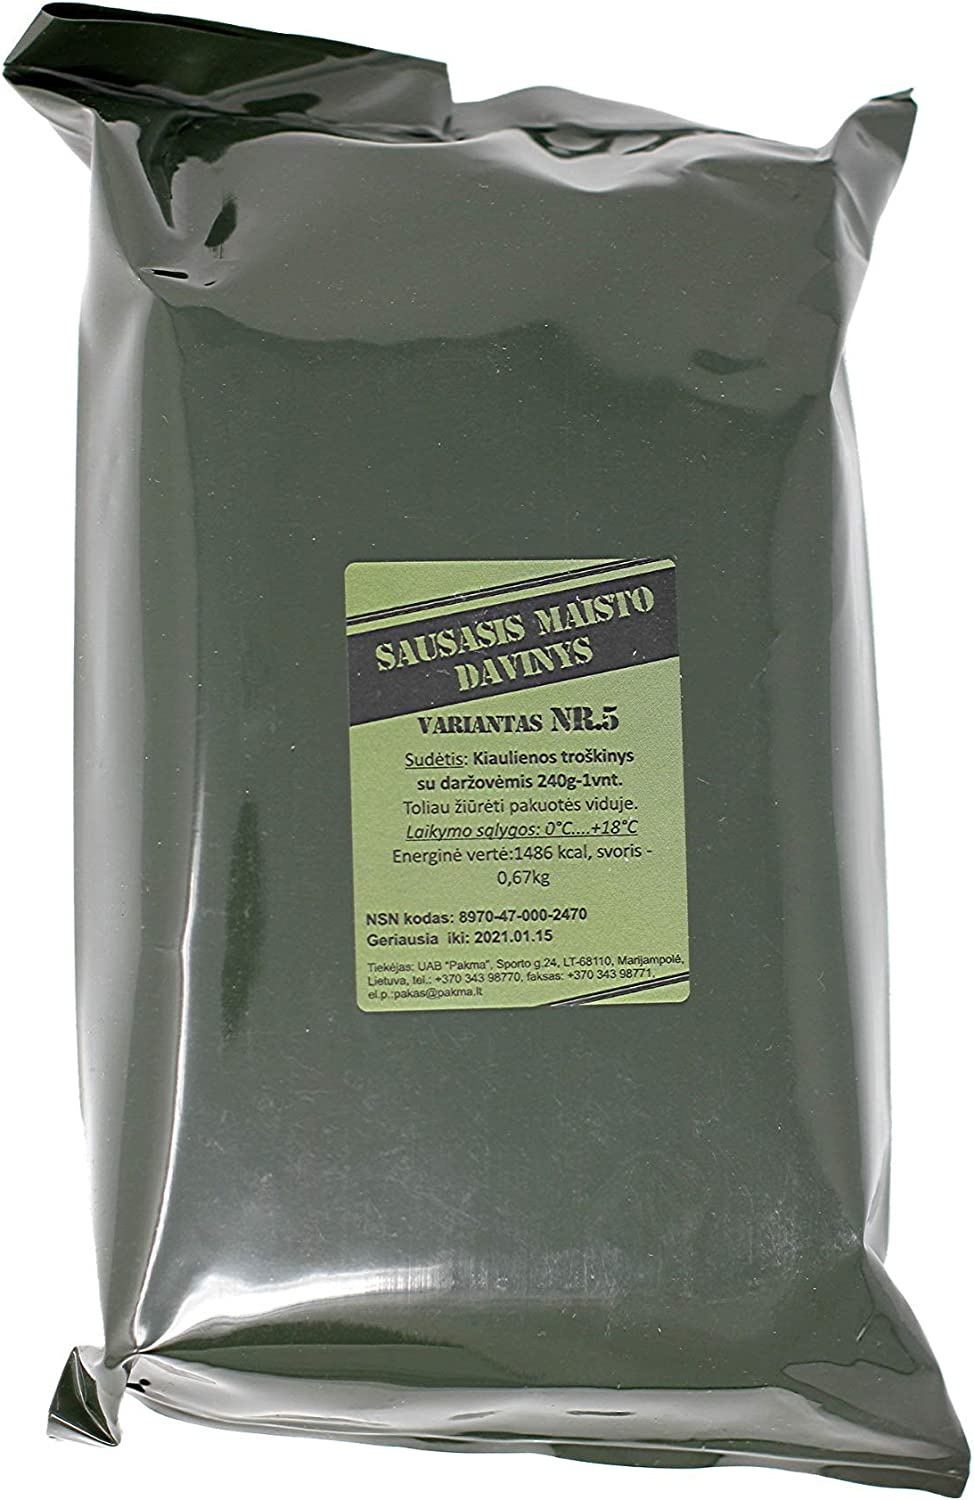 Lithuanian Army MRE ration pack (1 pack) Long Shelf Life: Amazon.es: Deportes y aire libre